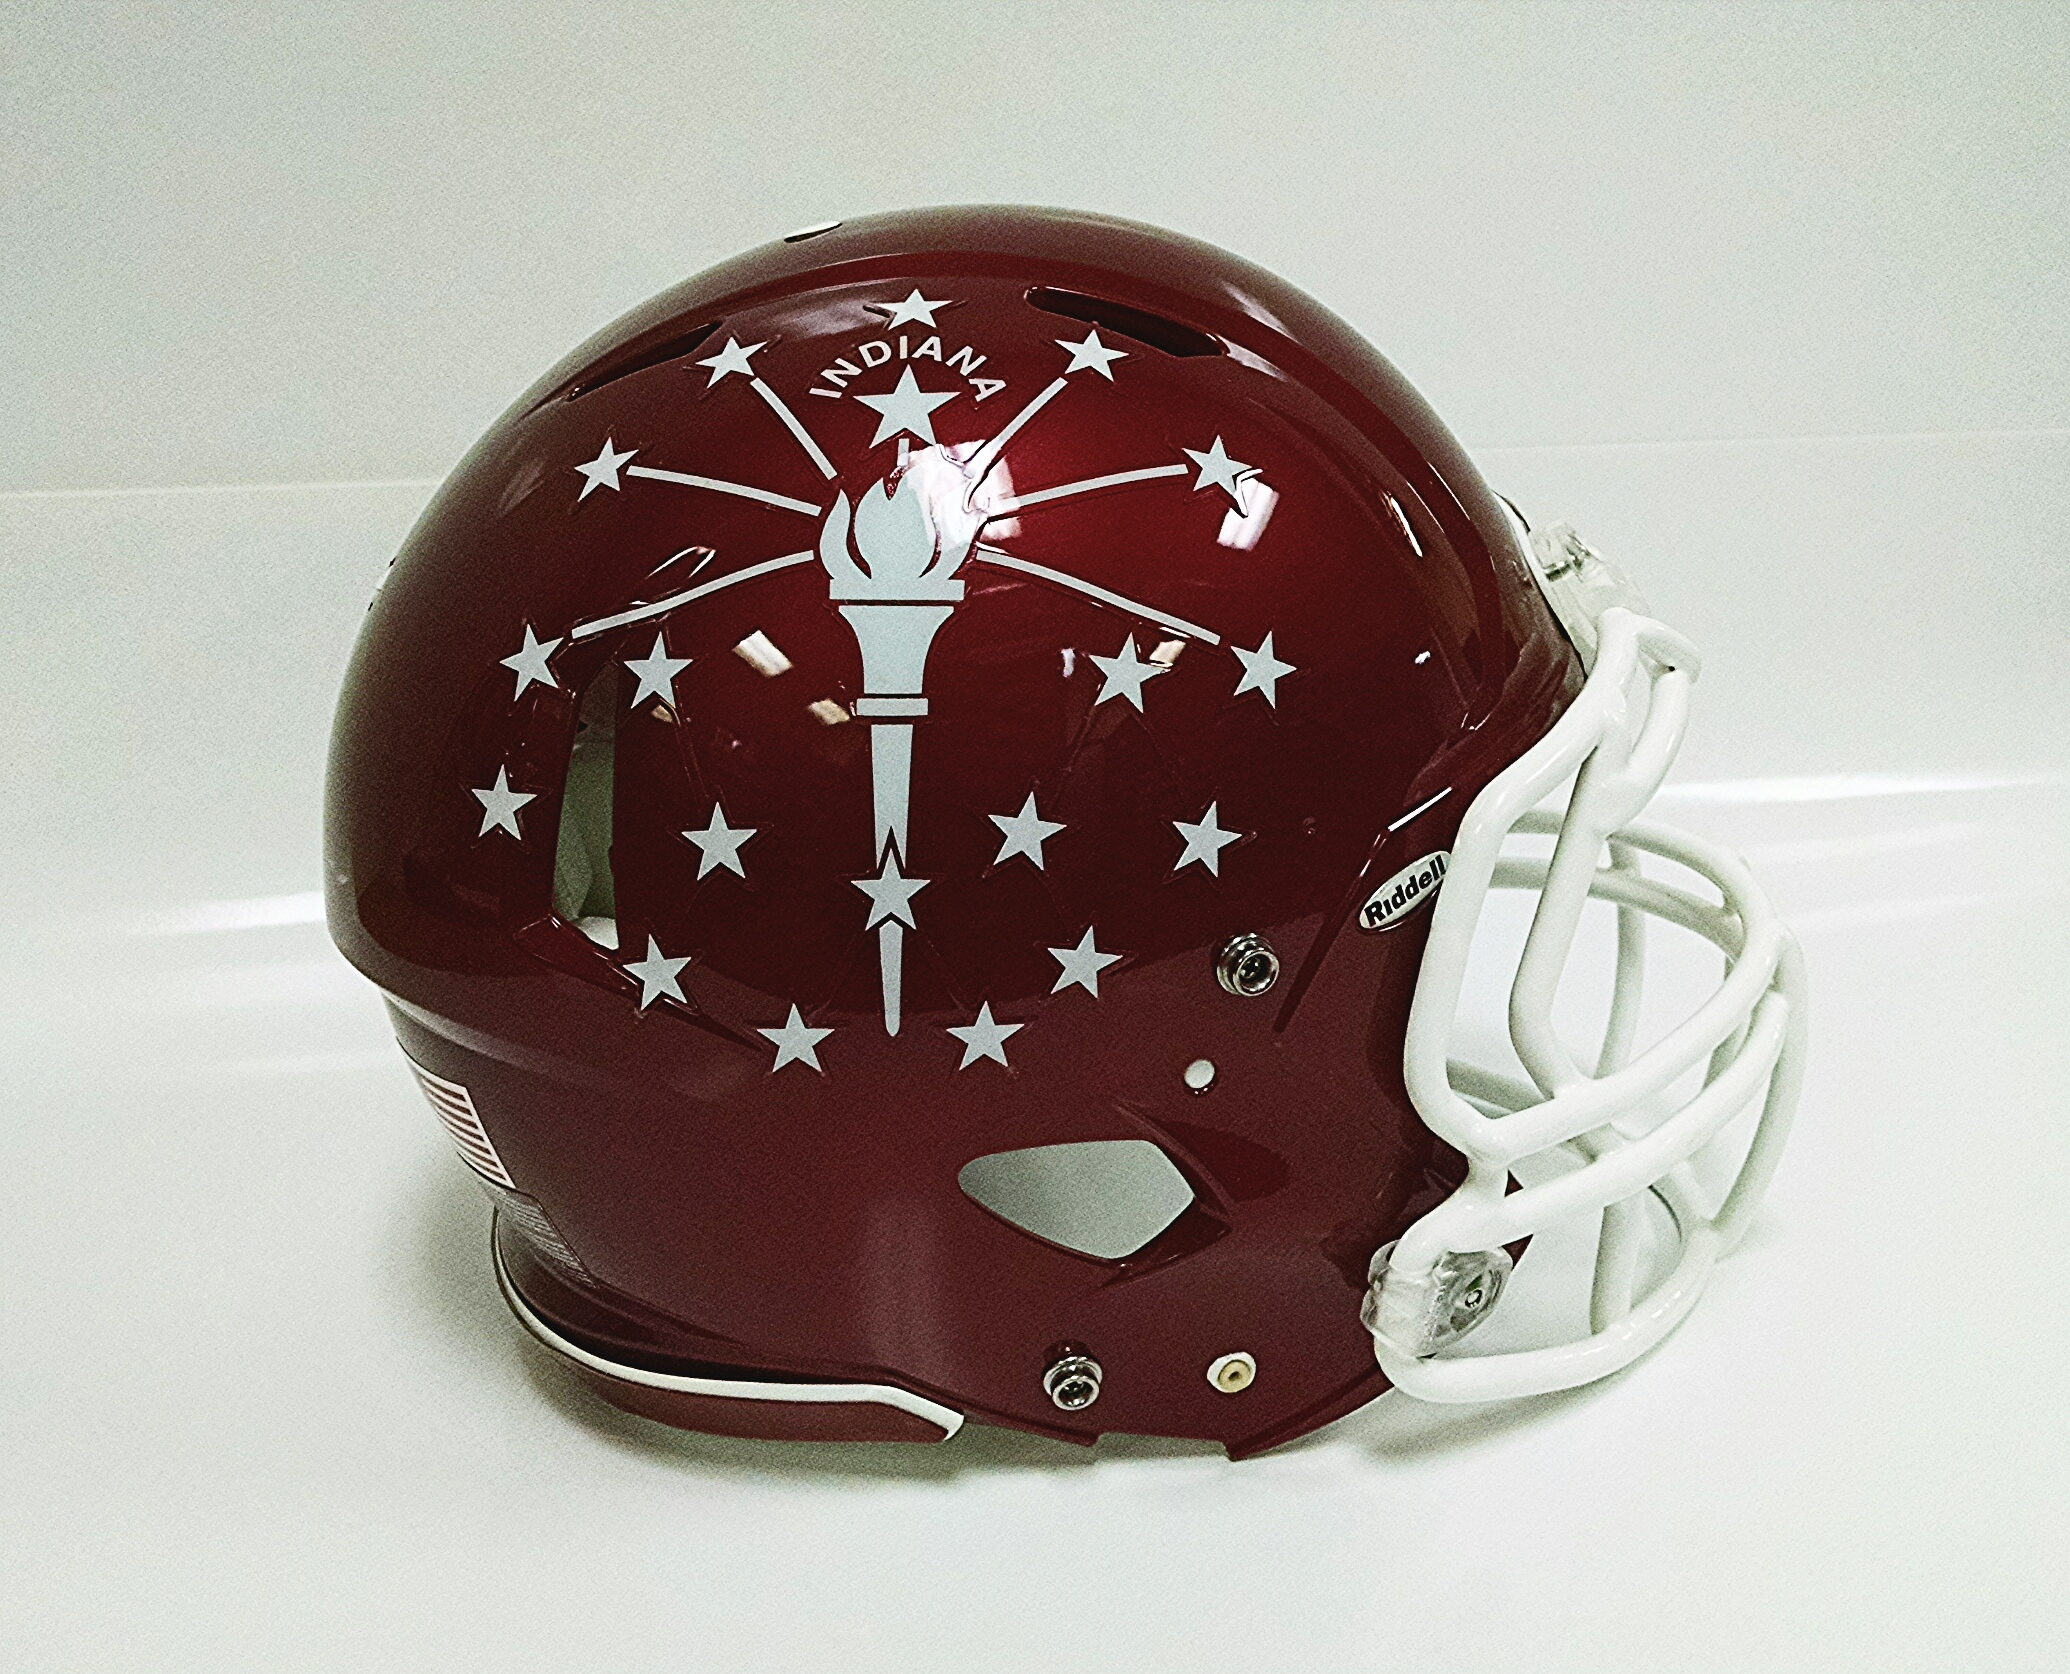 indiana university helmet